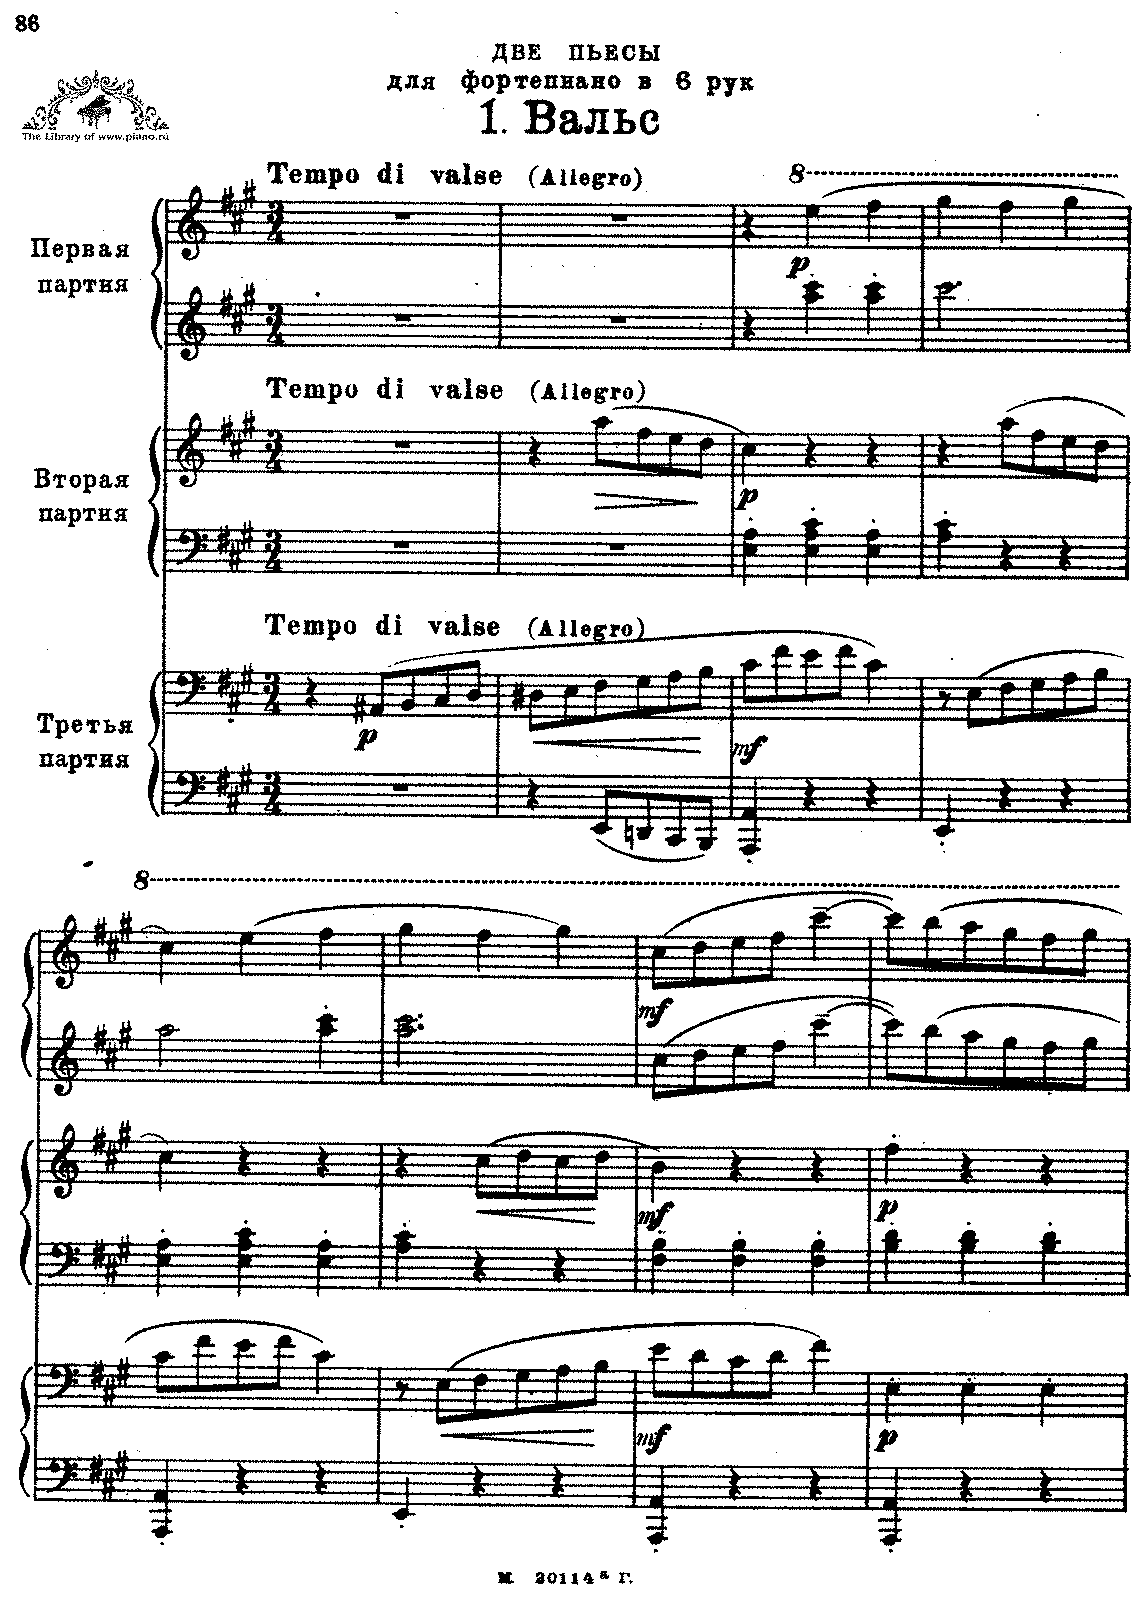 Rachmaninoff-Waltz-six-hands.pdf